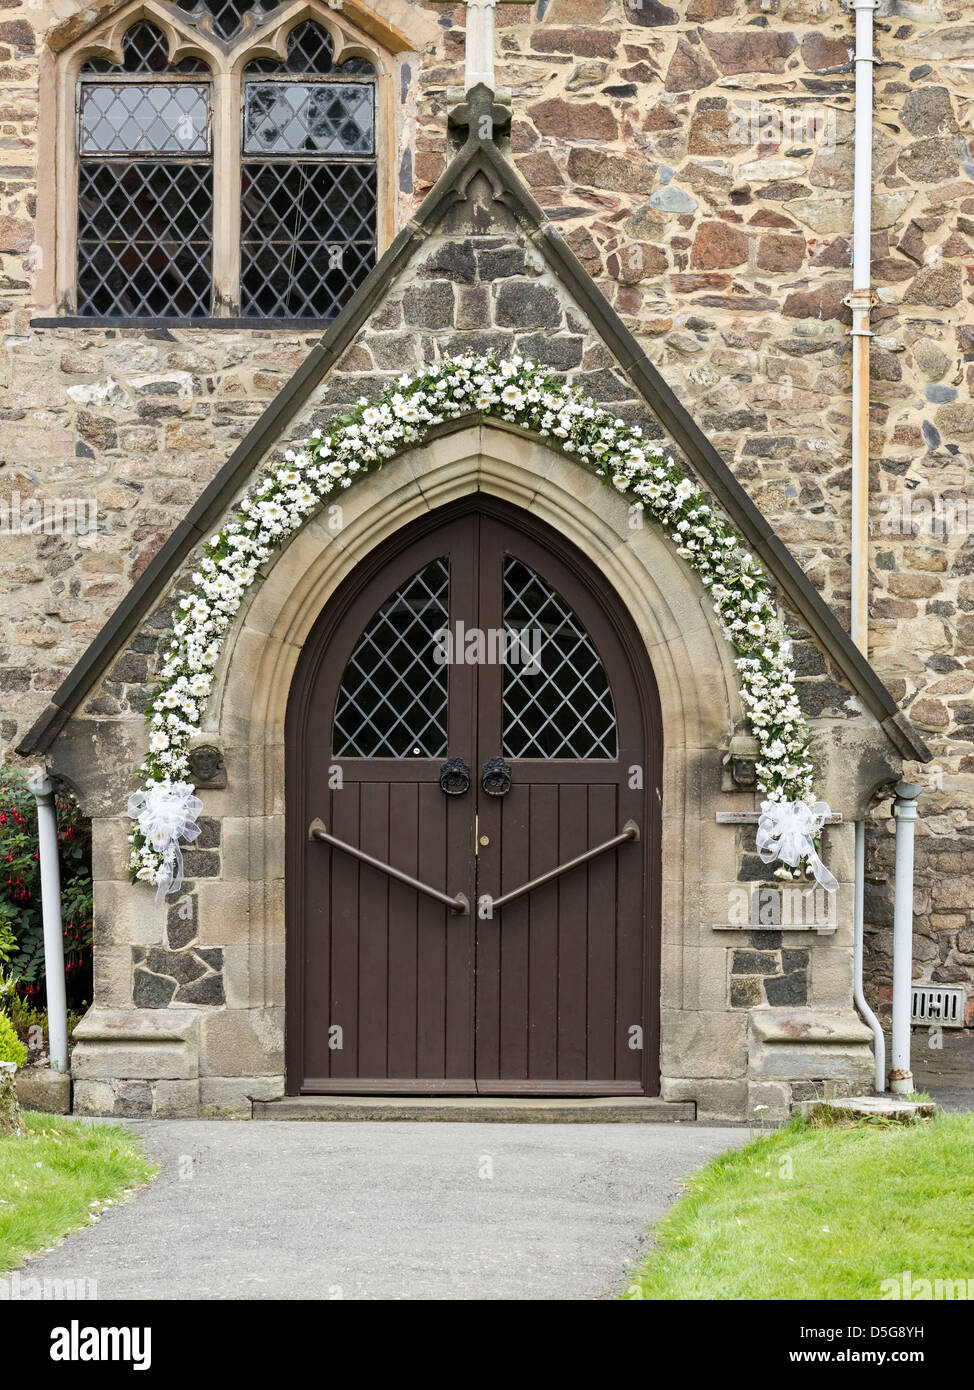 Church door with floral wedding garland All Saints Church Newtown Linford Leicestershire England UK & Church door with floral wedding garland All Saints Church Newtown ...